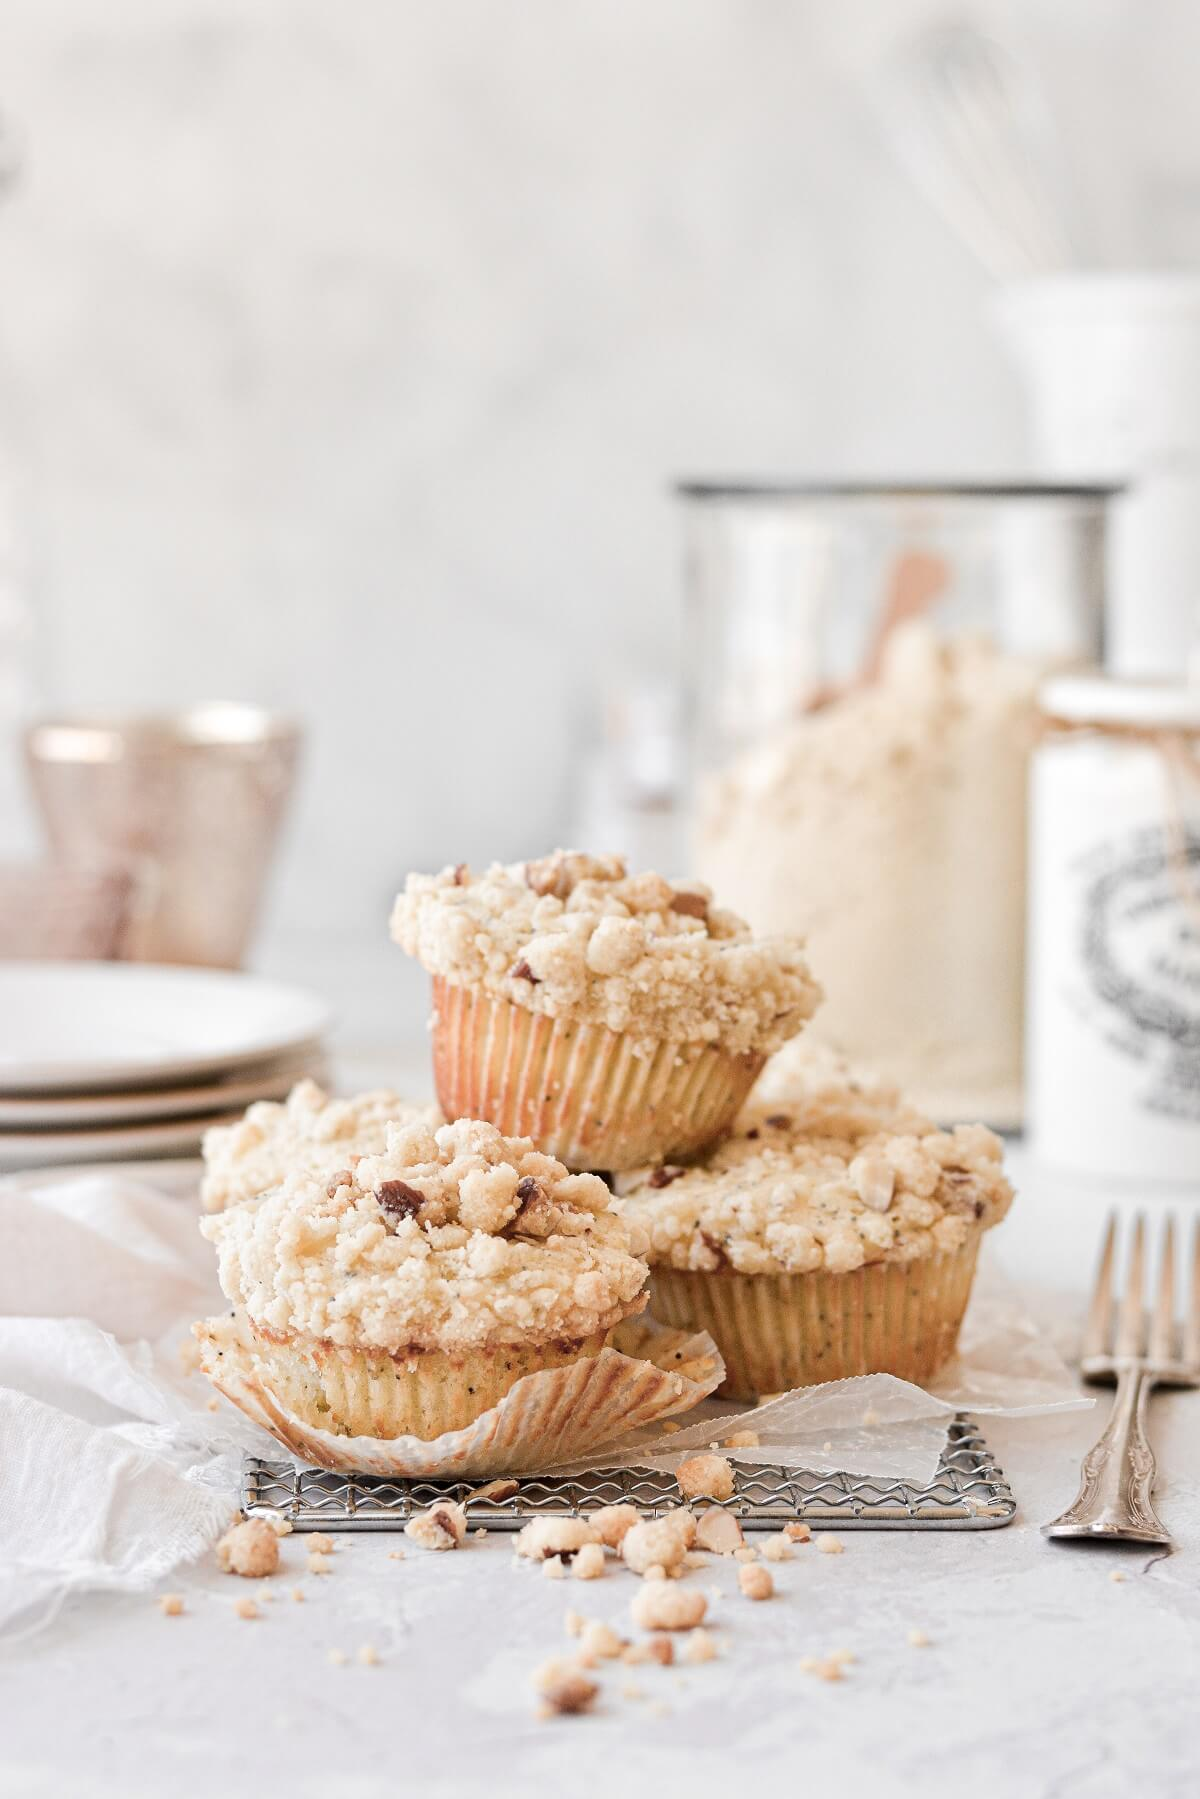 Almond poppy seed muffins, piled on top of a cooling rack.